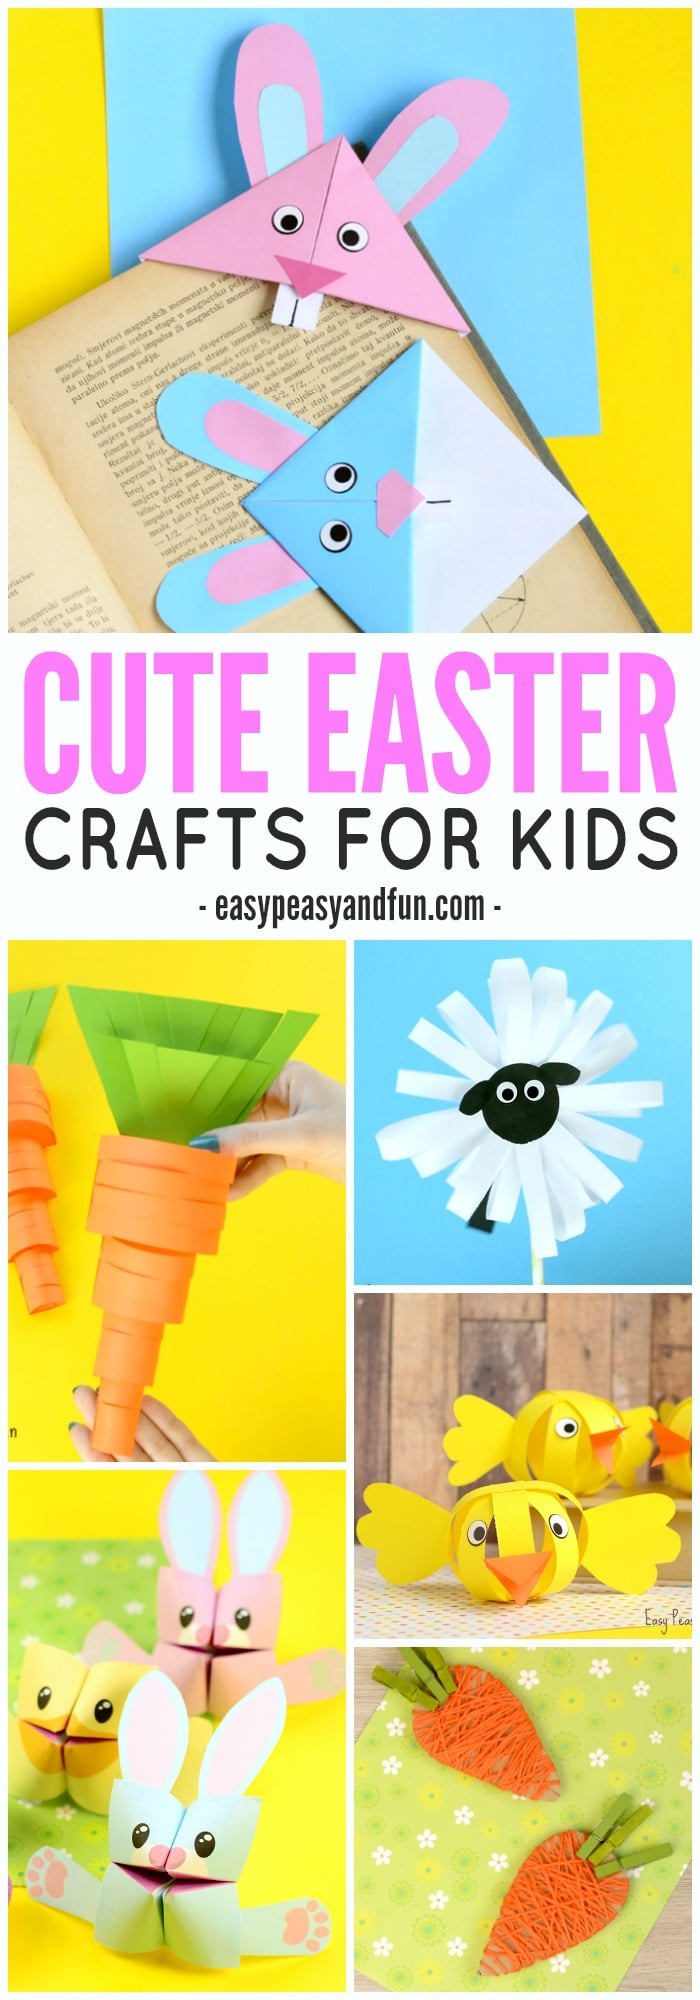 Cute Easter Crafts for Kids to Make